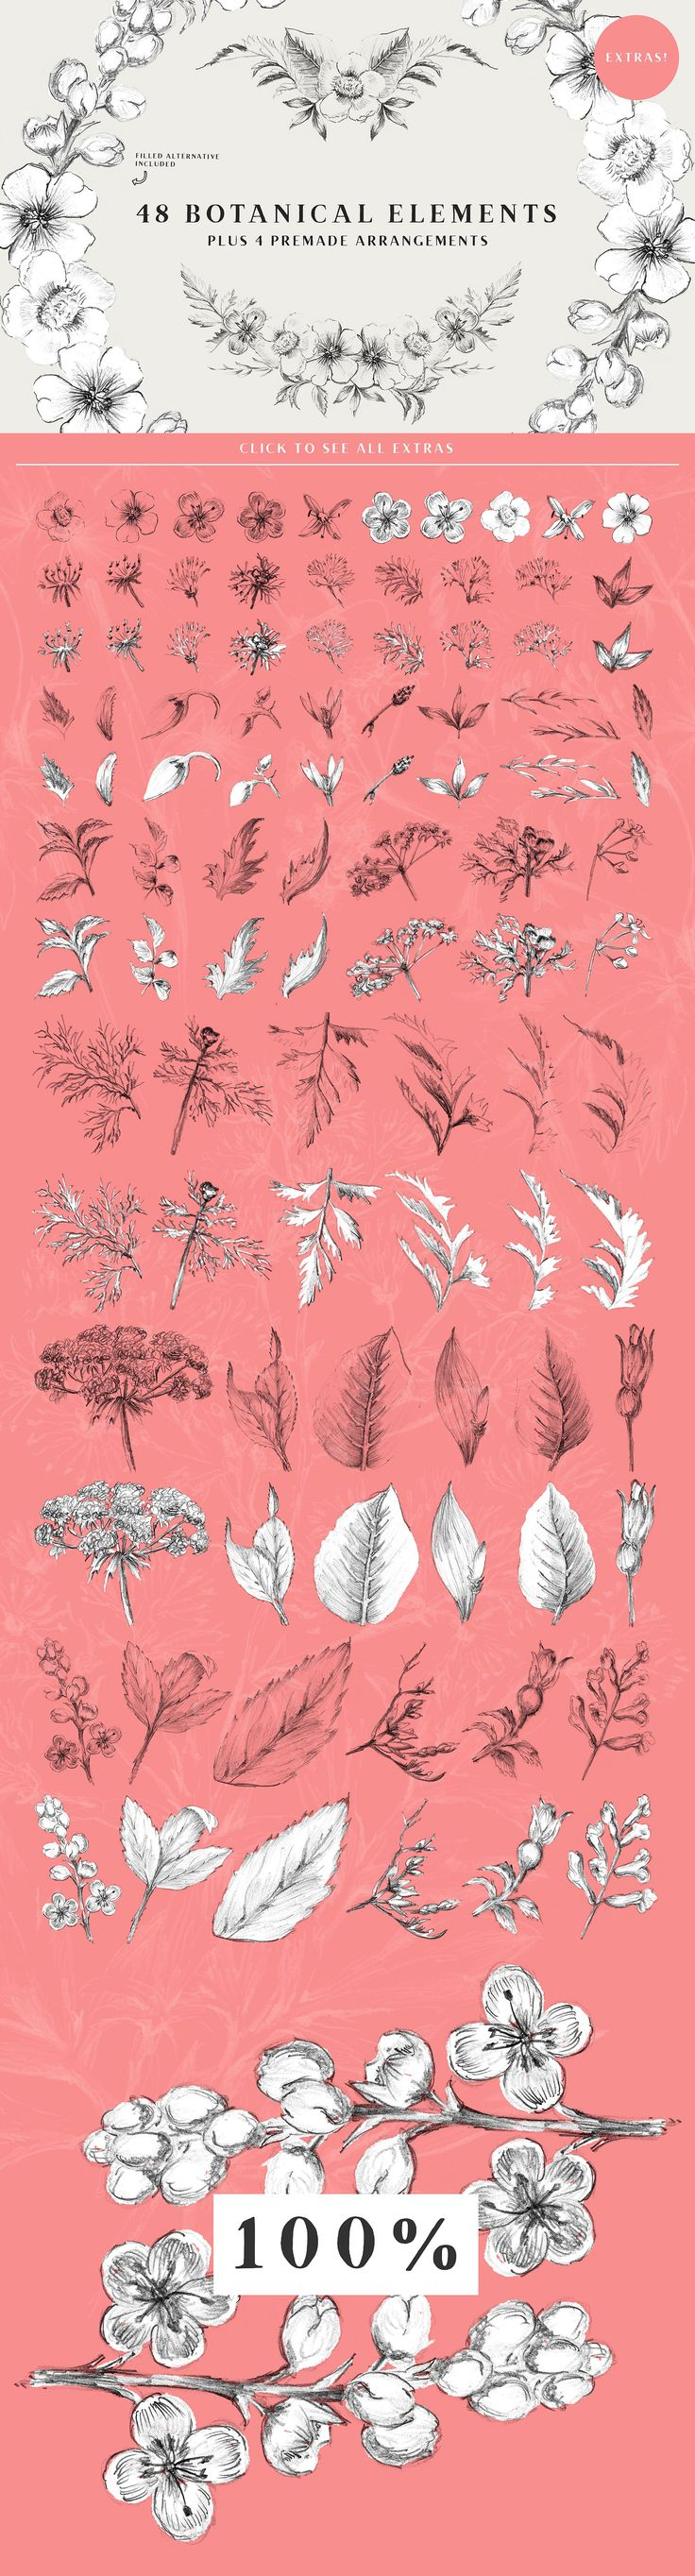 13 Botanical Illustrations & Extras by Vector Hut on @creativemarket